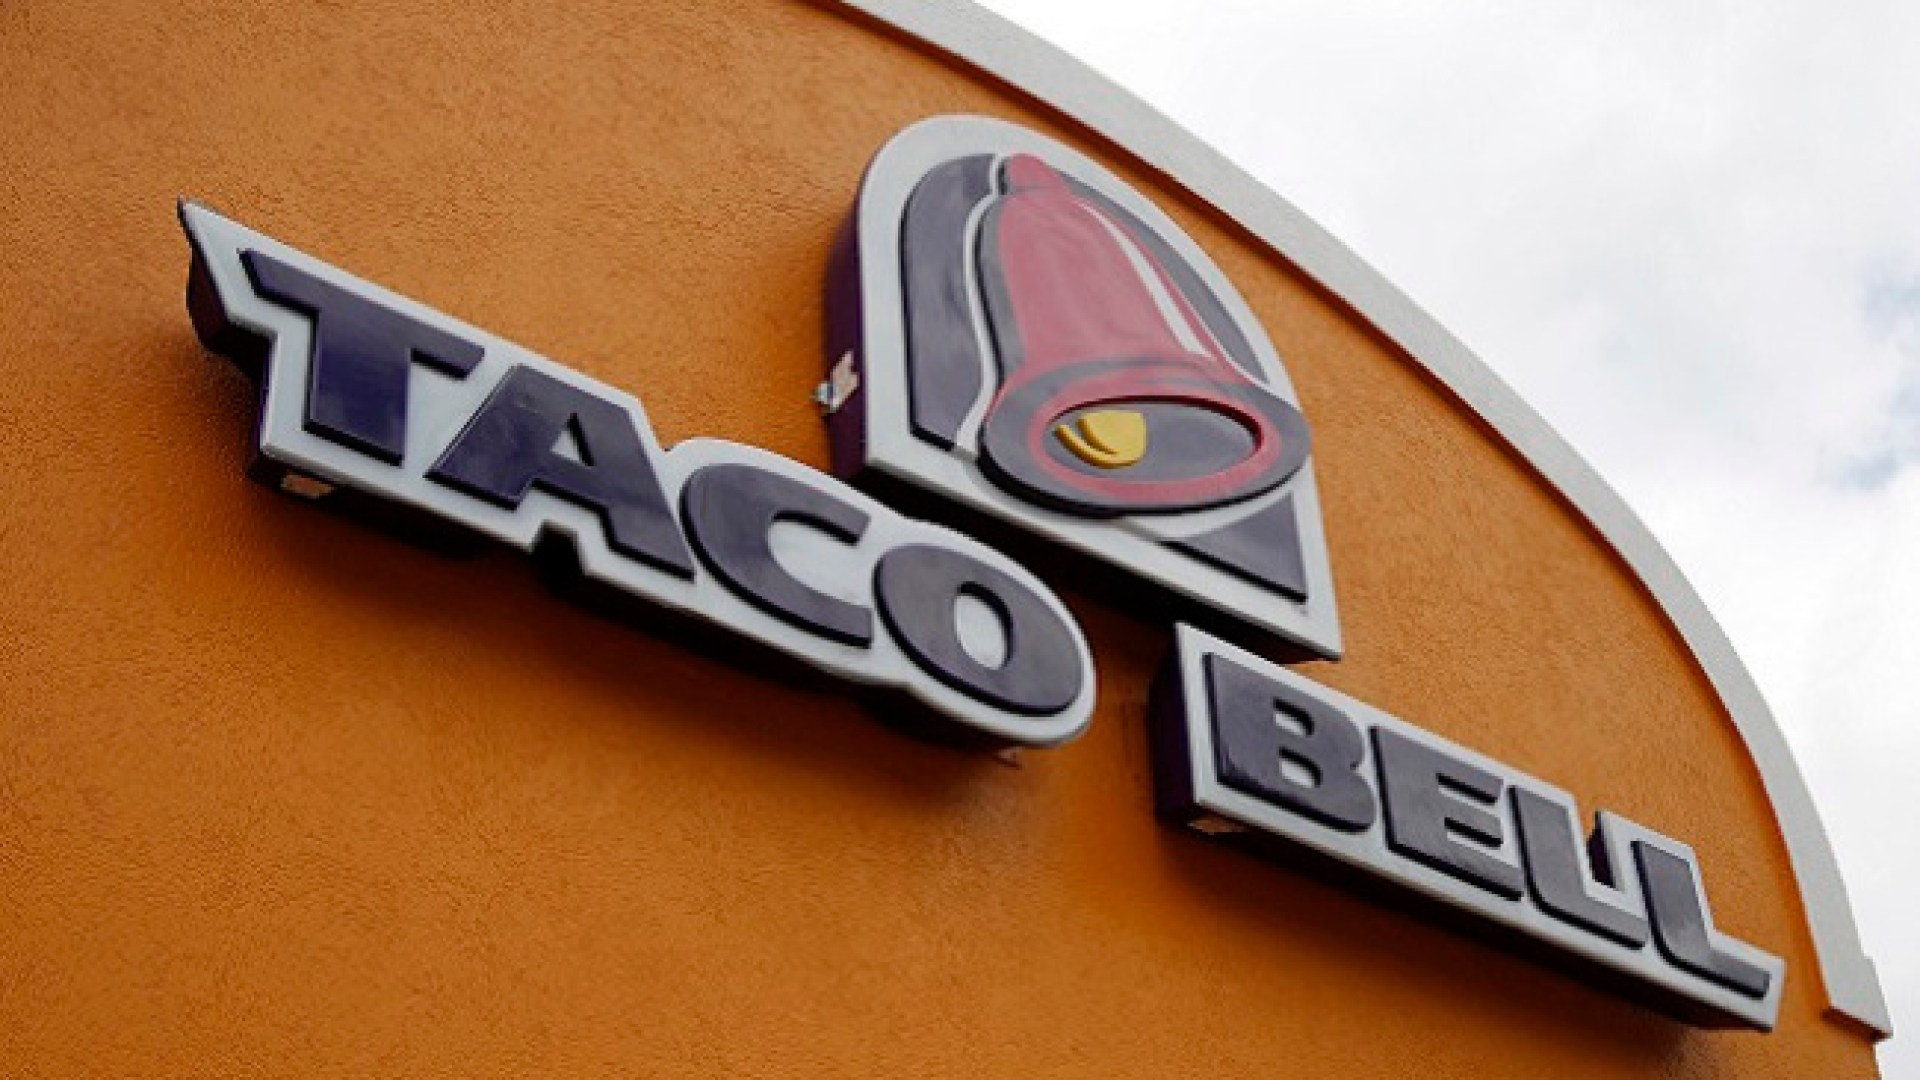 Stolen base in World Series means freebie coming up at Taco Bell locations